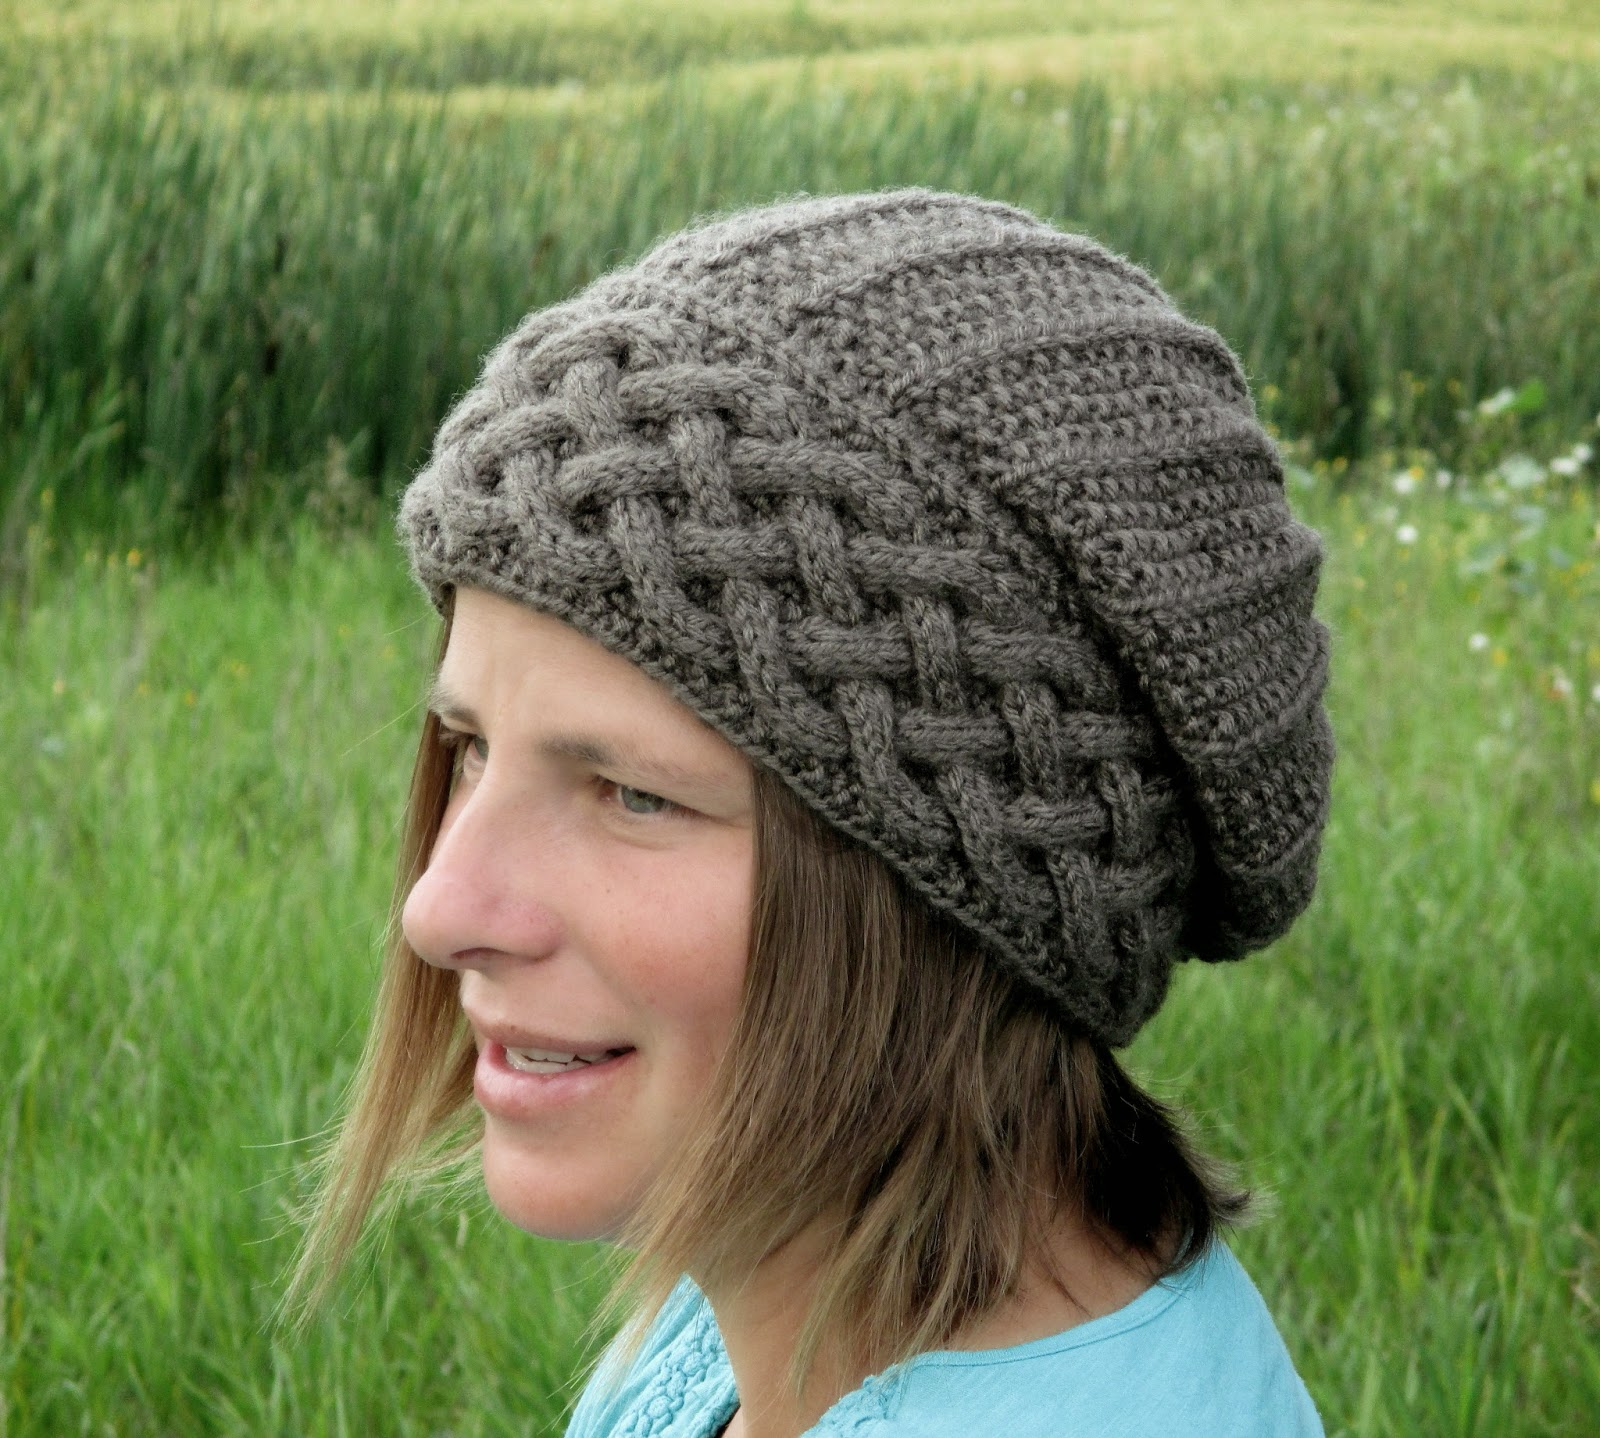 Knot Enuf Knitting: Song of Peace Slouch Hat Knitting Pattern